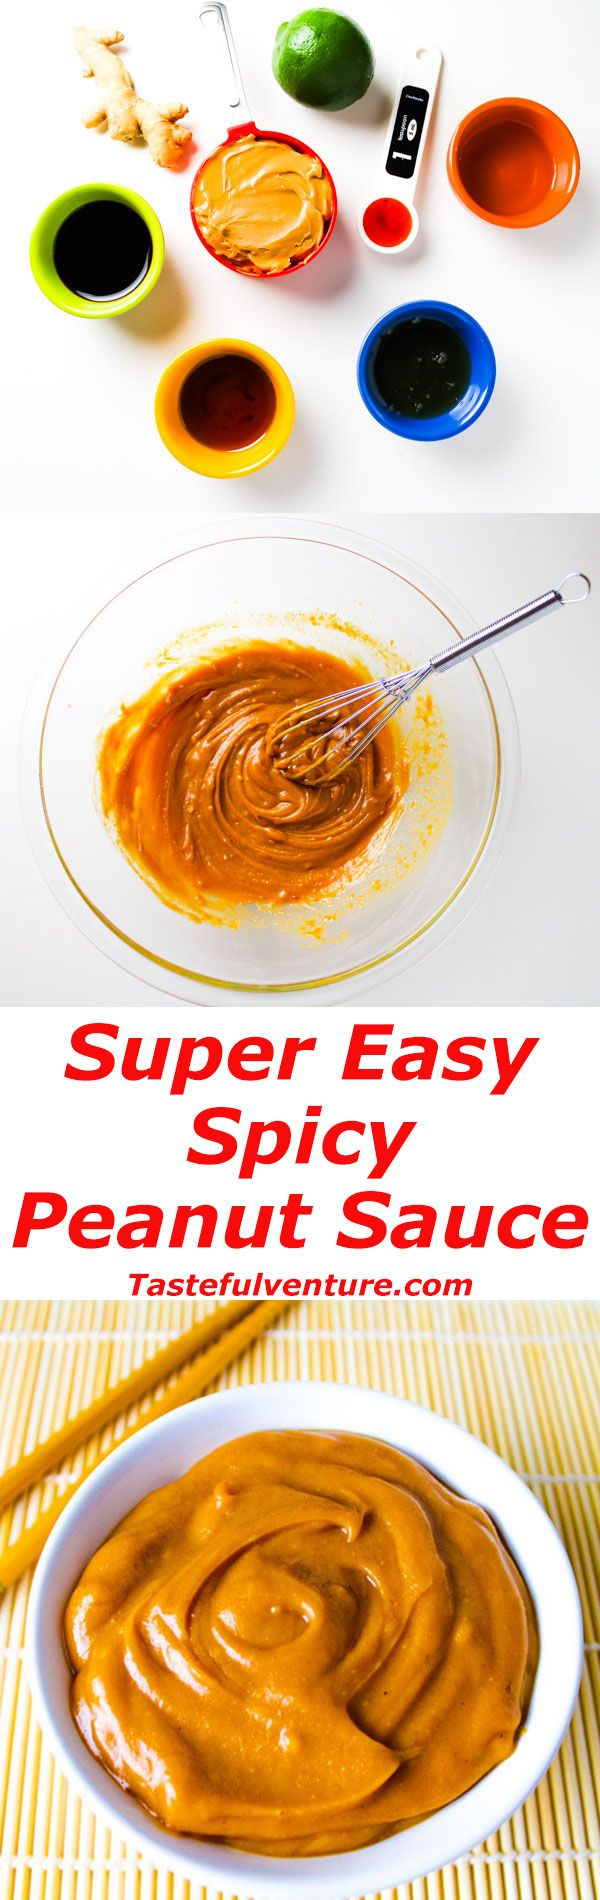 This Spicy Peanut Sauce is super easy to make and is Gluten free! We used coconut peanut butter, soy sauce, rice vinegar, honey, ginger, lime, and chili sauce. | Tastefulventure.com